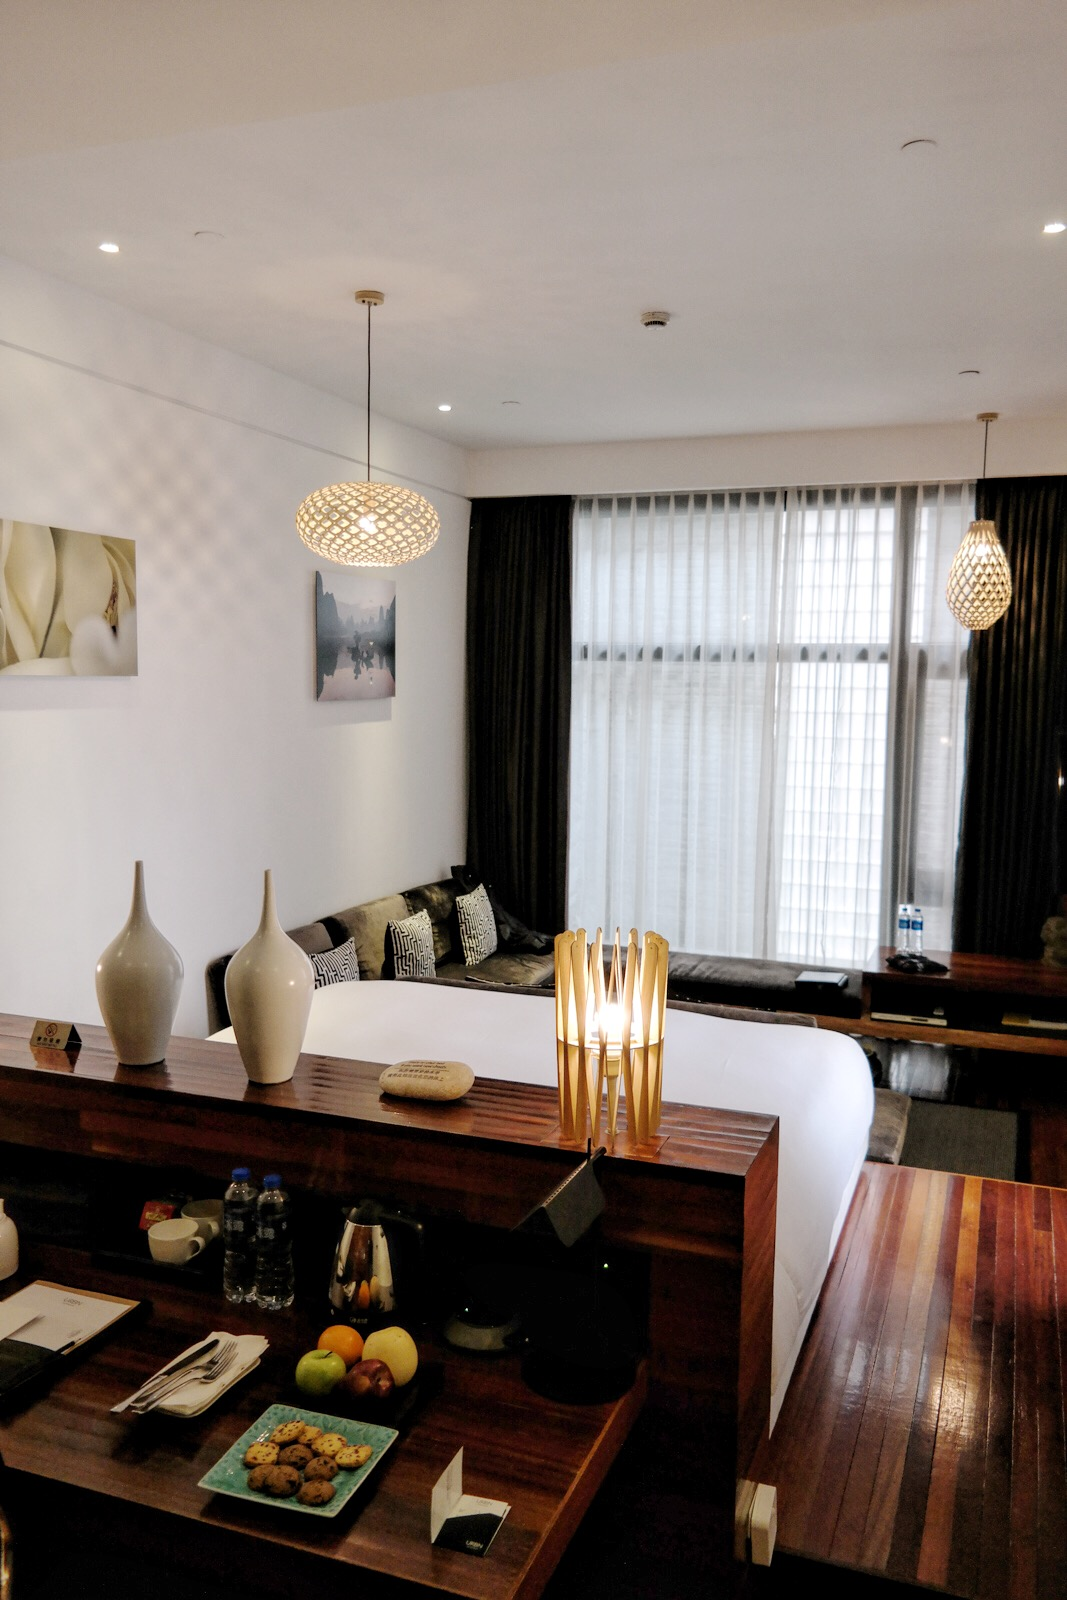 URBN Hotel Shanghai deluxe room bed design light eco chic comfort boutique hotel Tempting Places Jiaozhou Rd Jing'an district photo UsofParis travel blog